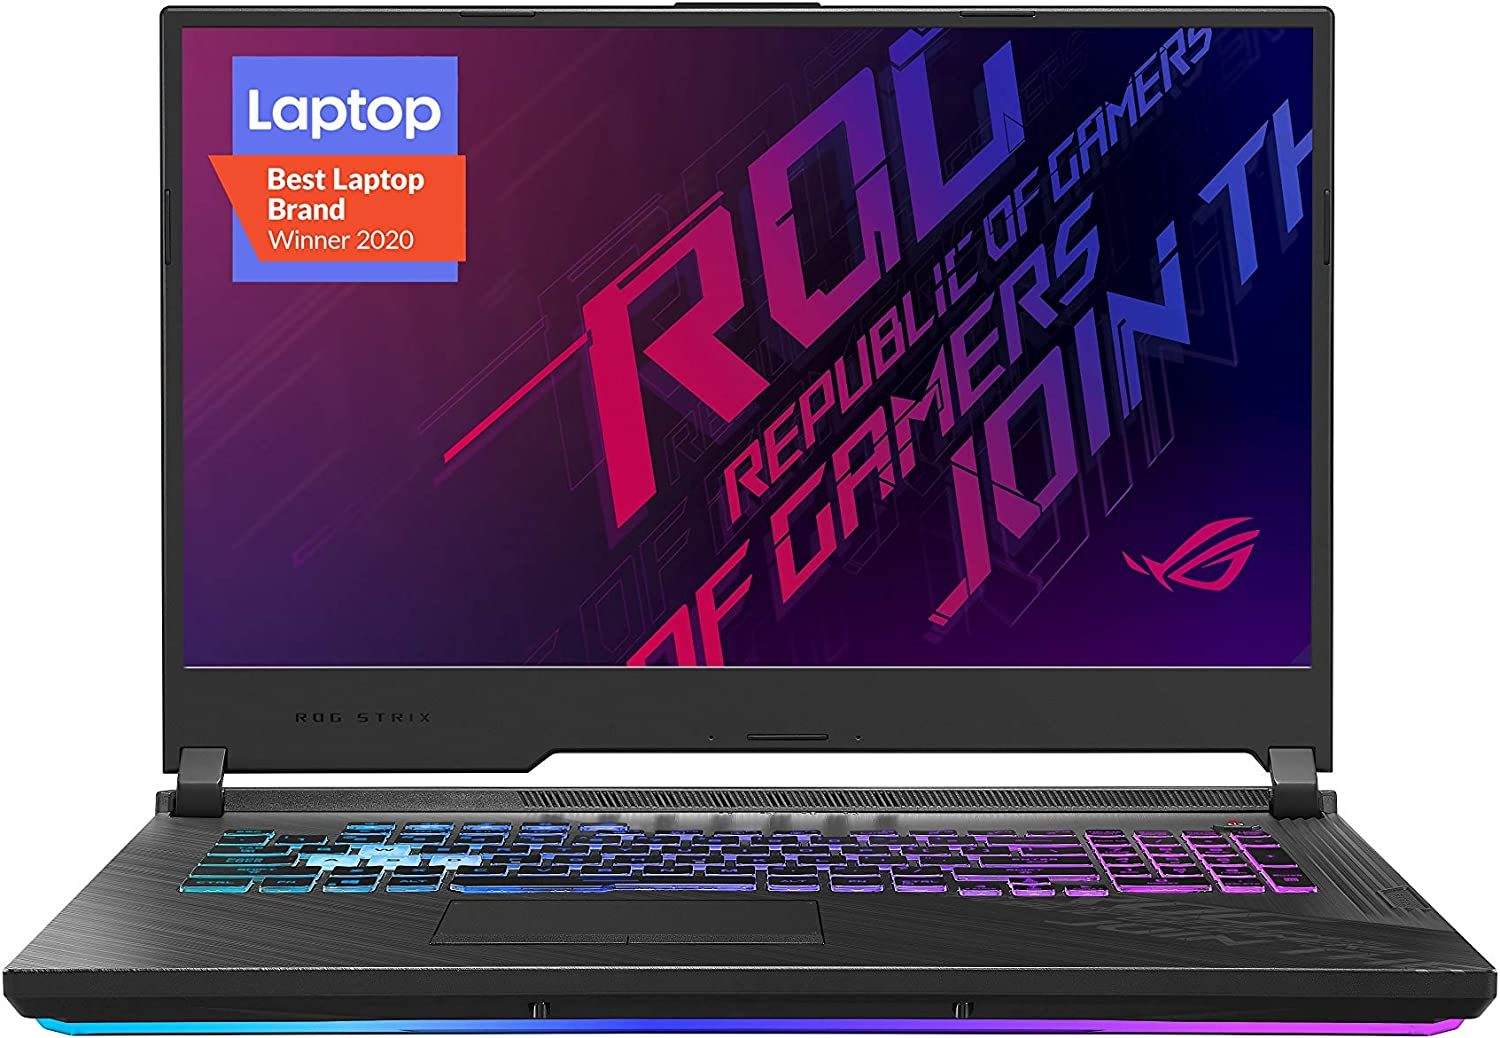 "ASUS ROG Strix G17 (2020) Gaming Laptop, 17.3"" 144Hz FHD IPS Type Display, NVIDIA GeForce RTX 2070, Intel Core i7-10750H, 16GB DDR4, 512GB PCIe NVMe SSD, RGB Keyboard, Windows 10, Black, G712LW-ES74"